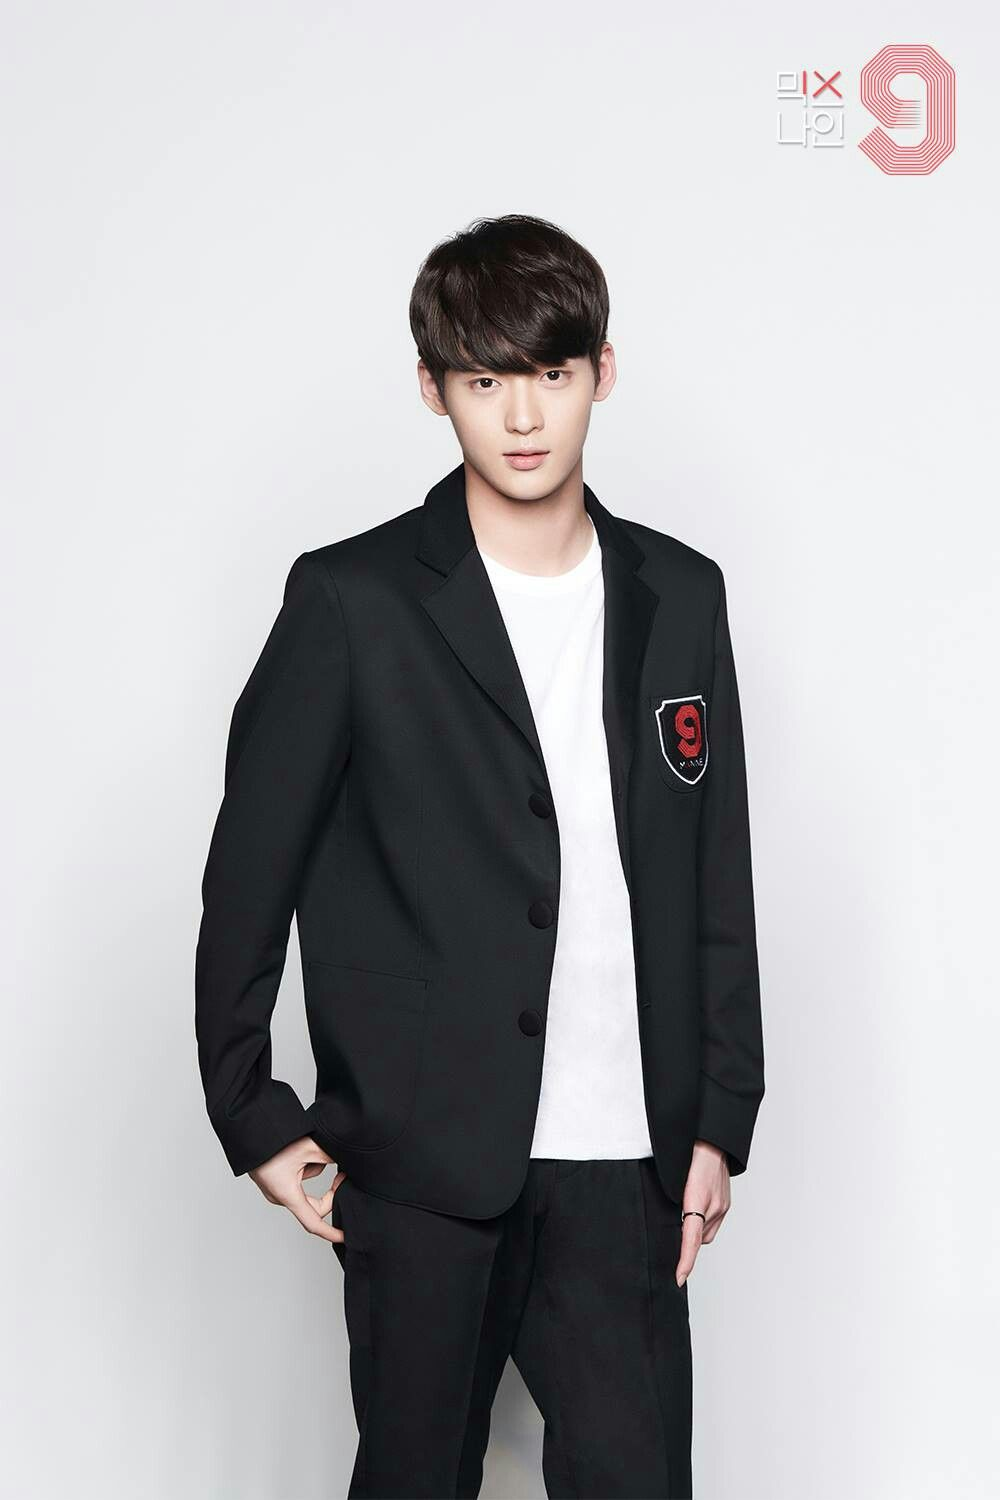 Image result for kim dong yoon mixnine